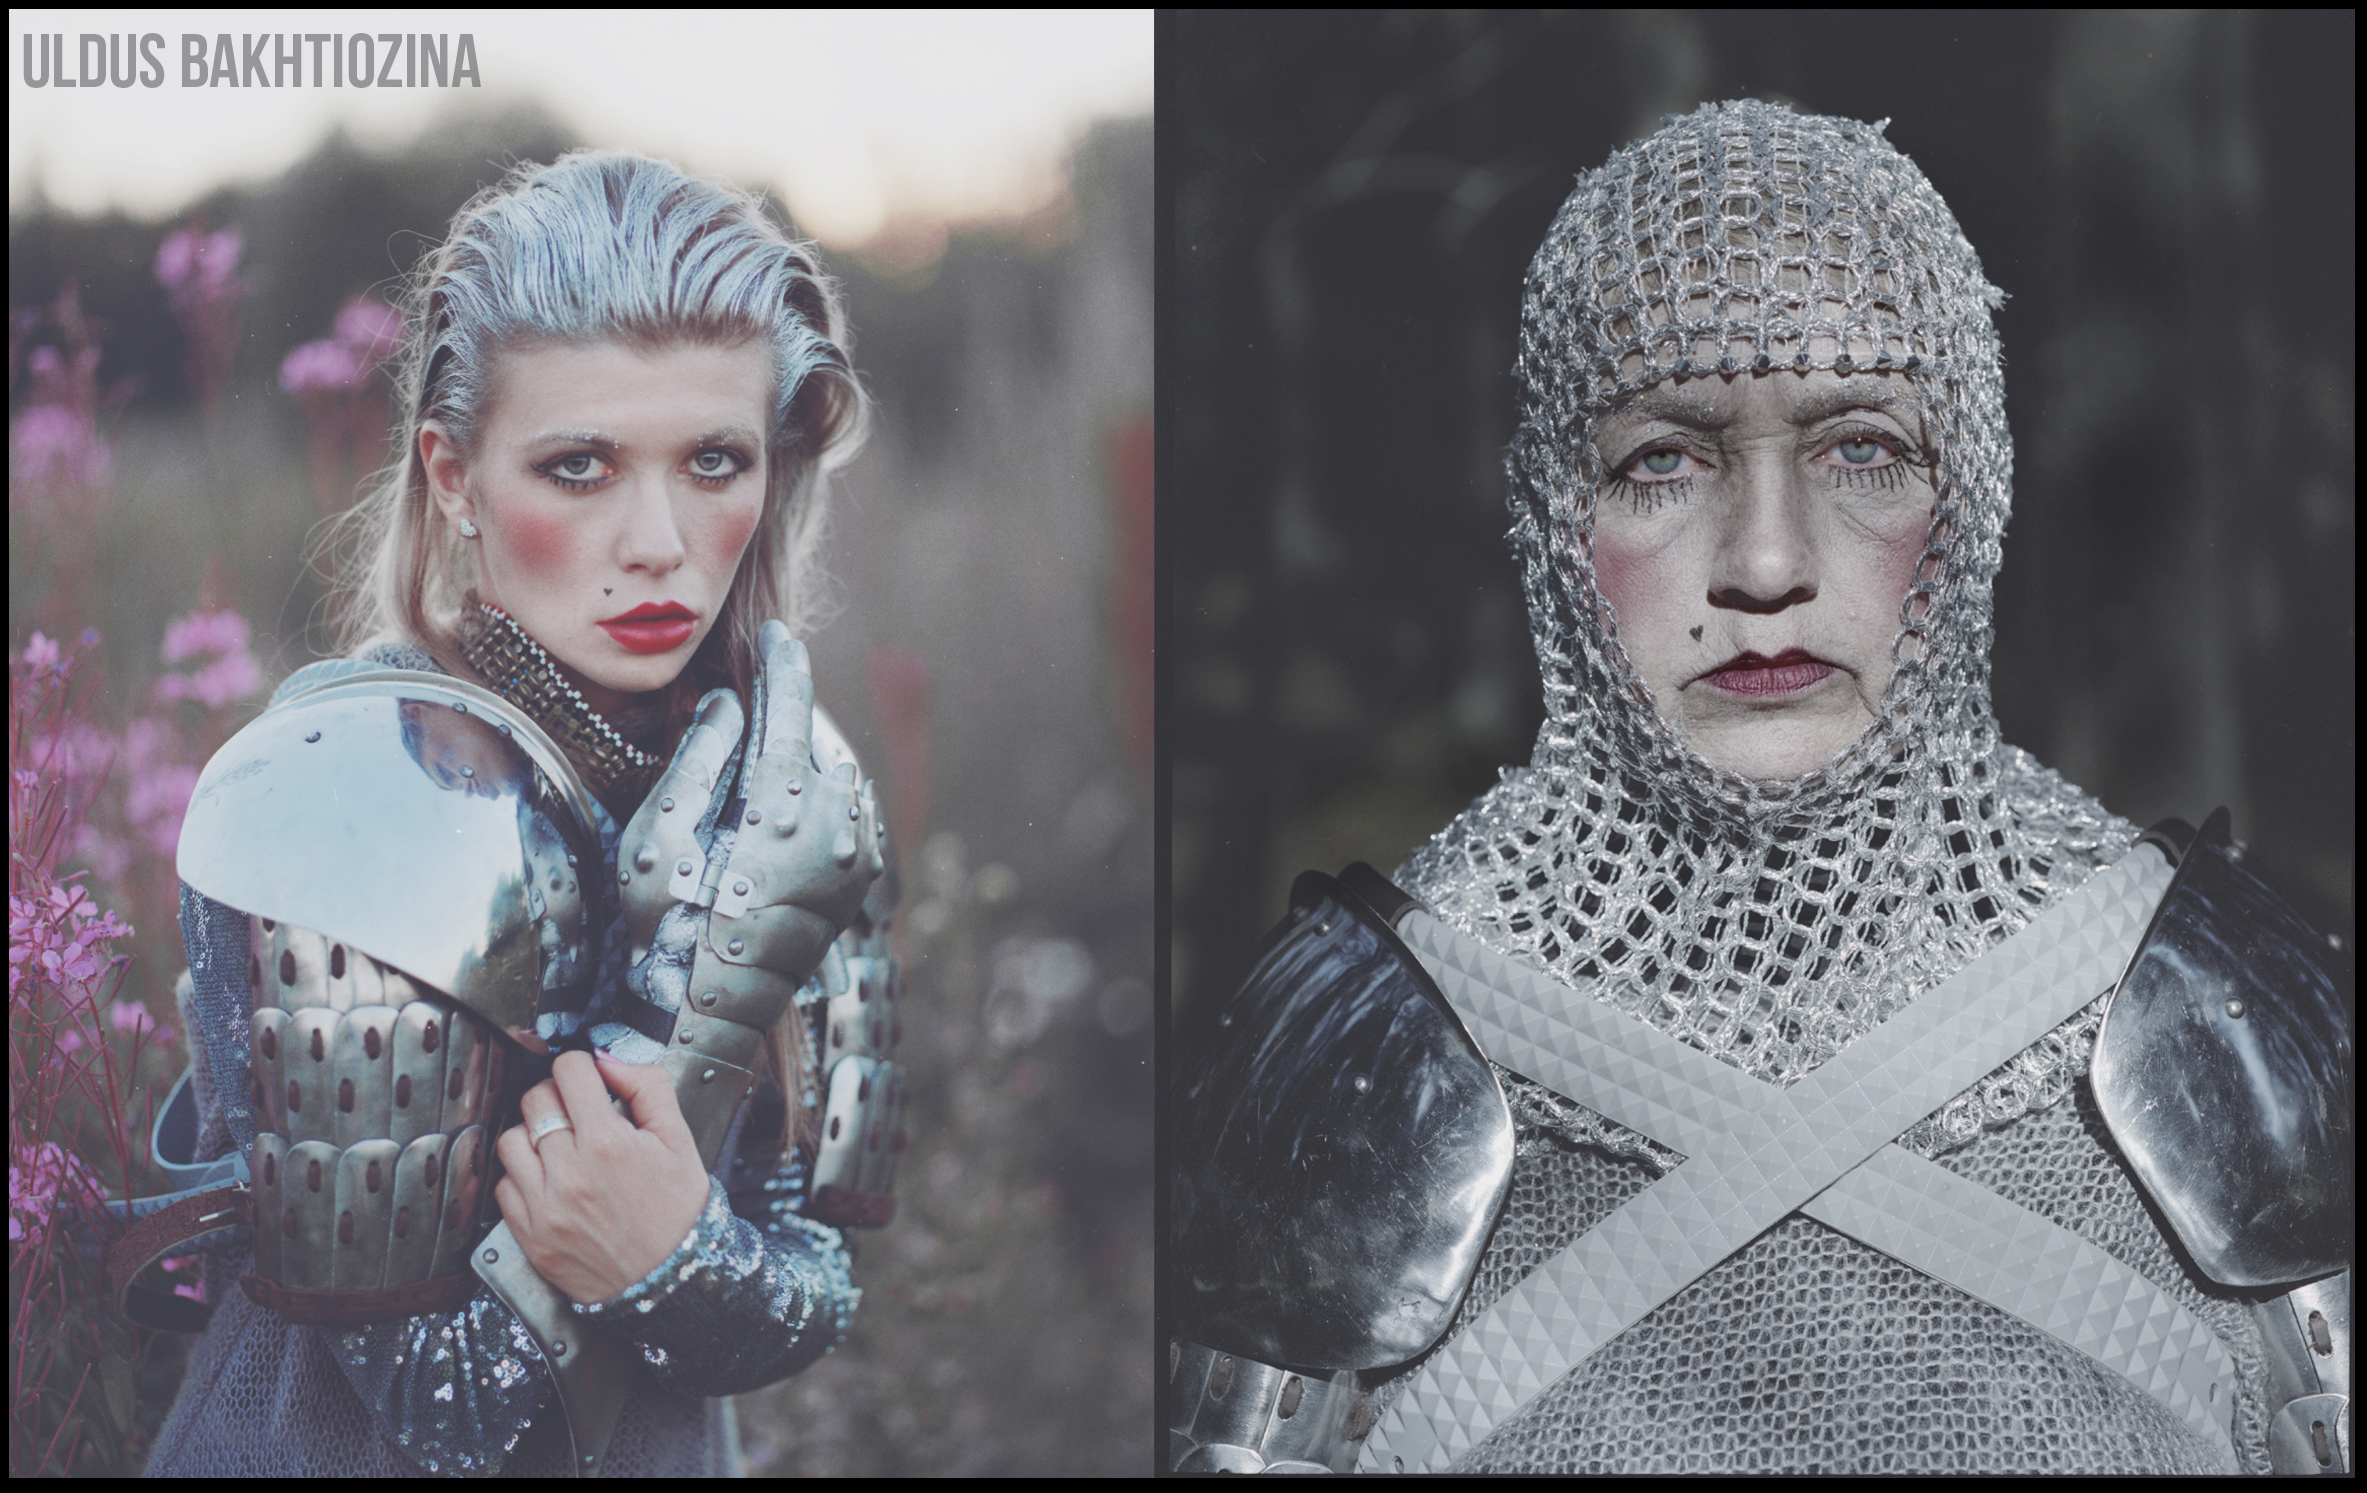 "This photo project, called ""Russ Land,"" is made by renowned photographer Uldus Bakhtiozina from St. Petersburg. She revamps the image of some of Russia's best loved fairy-tale characters.  // Vasilisa Mikulishna comes from a folk legend about a wise and courageous woman who dresses up as a man to save her husband's life. Early Slavic feminism in a nutshell."